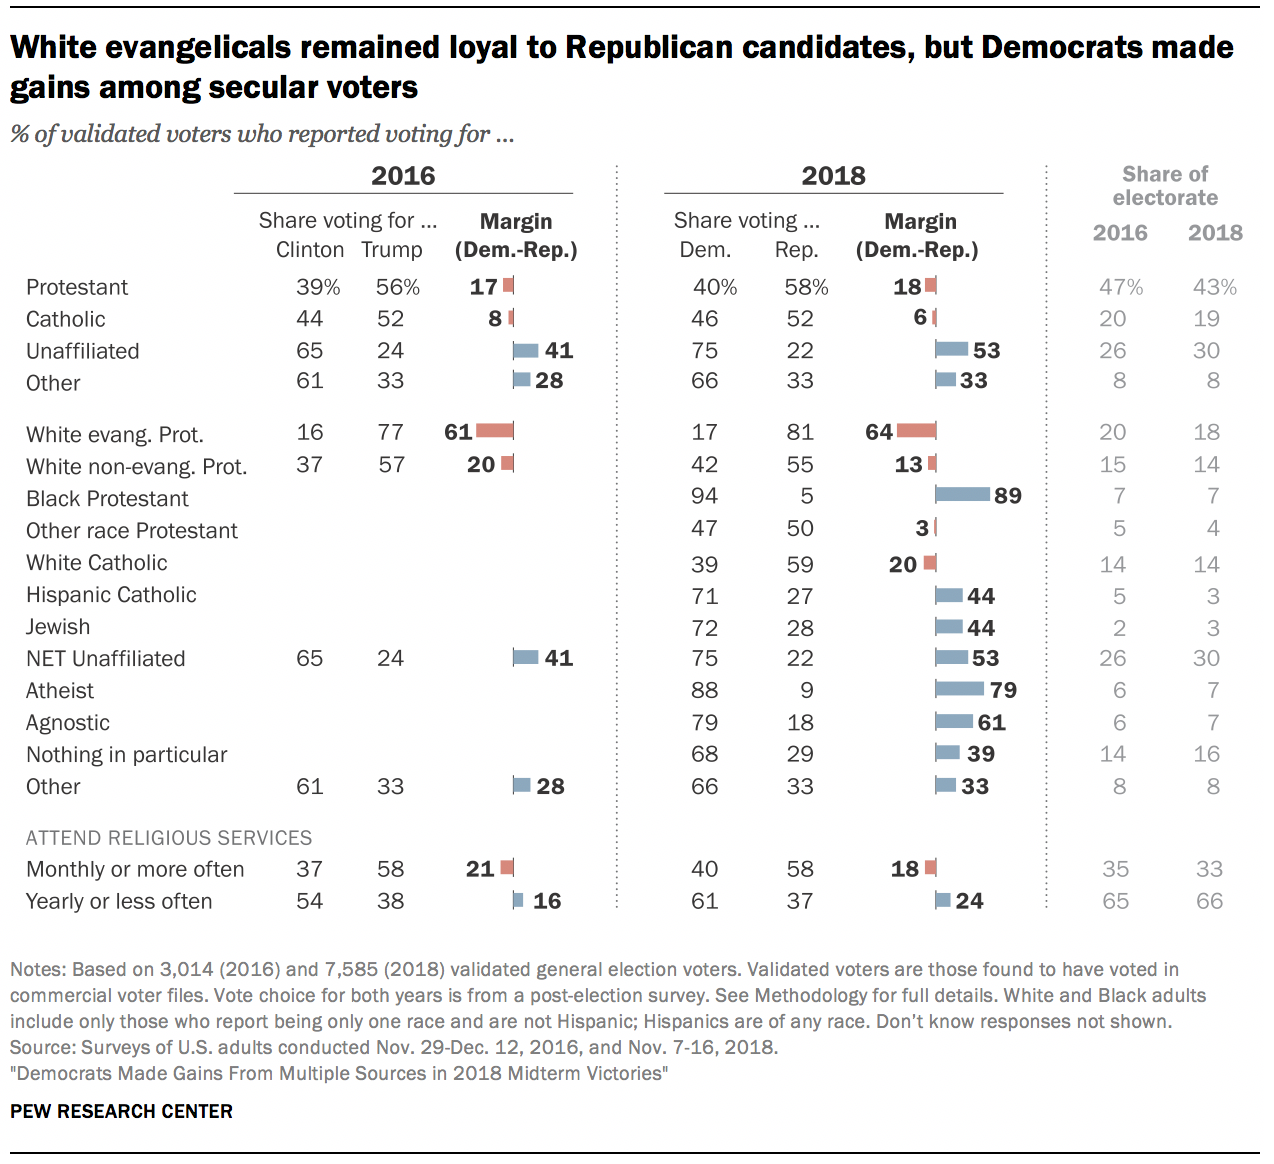 White evangelicals remained loyal to Republican candidates, but Democrats made gains among secular voters